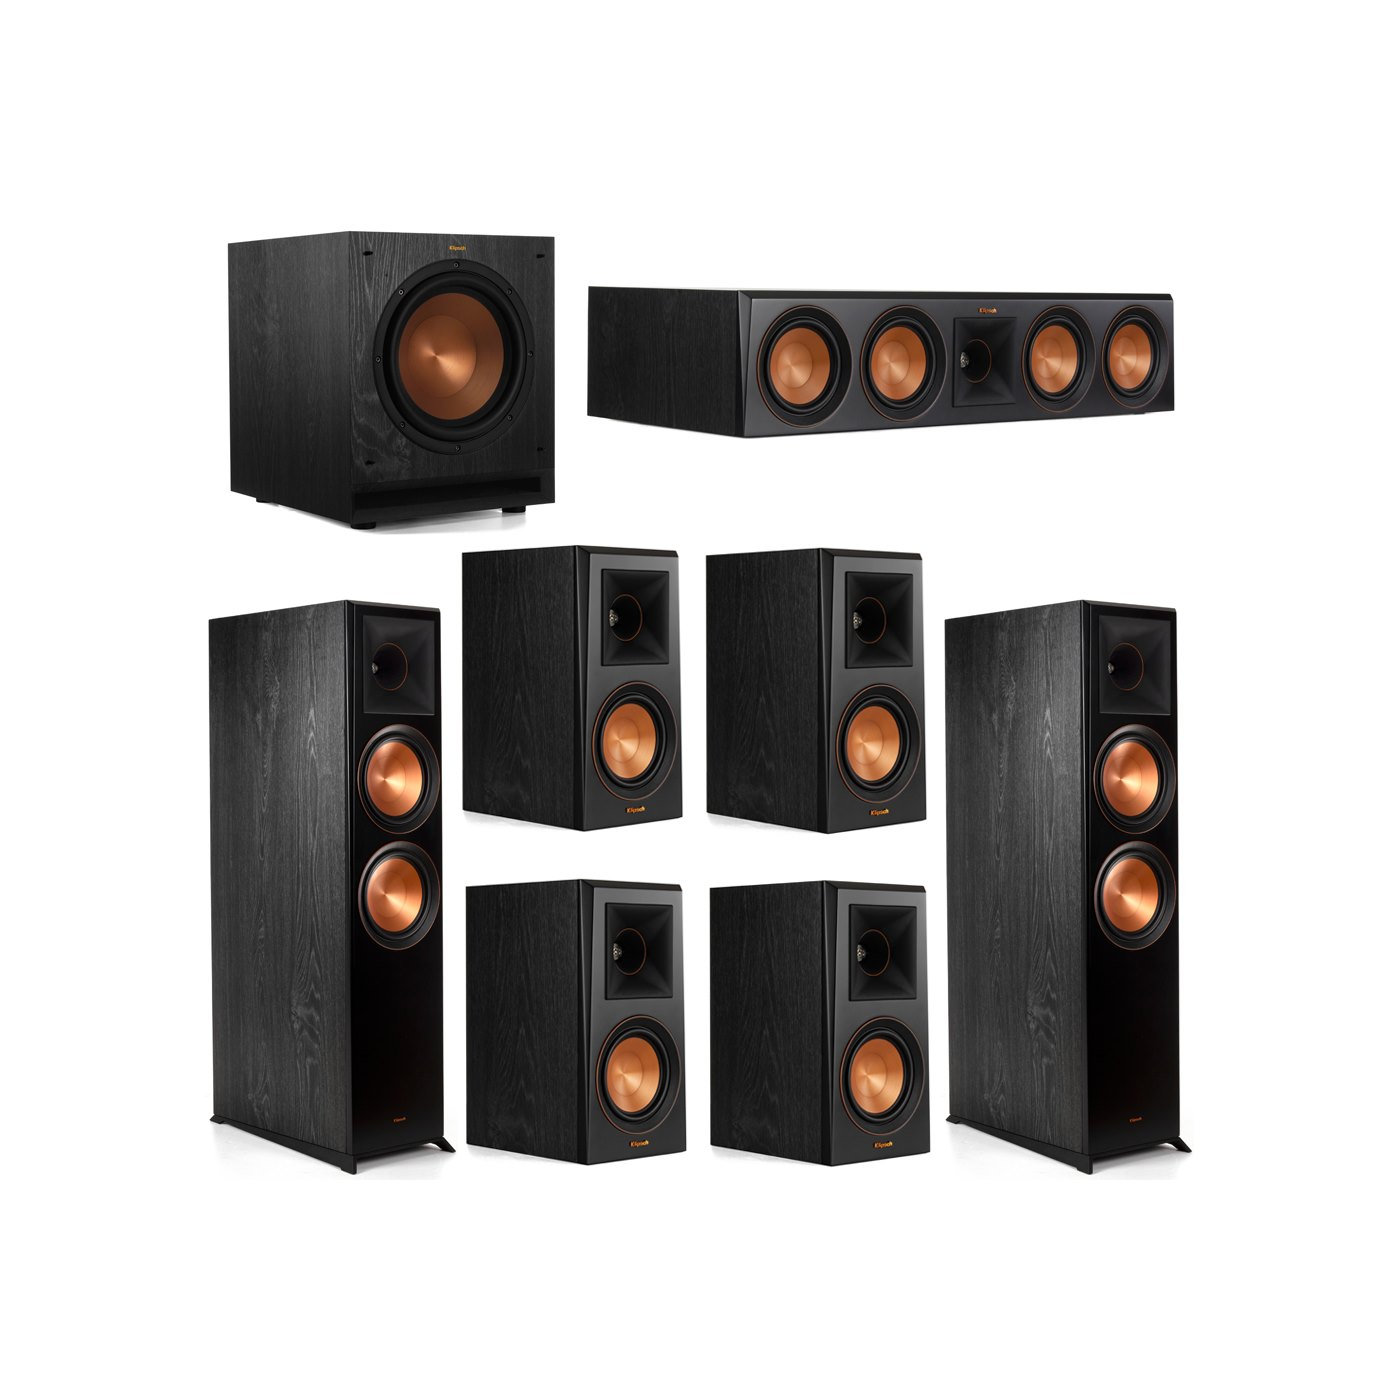 Klipsch 7.1 System with 2 RP-8000F Floorstanding Speakers, 1 Klipsch RP-504C Center Speaker, 4 Klipsch RP-500M Surround Speakers, 1 Klipsch SPL-100 Subwoofer